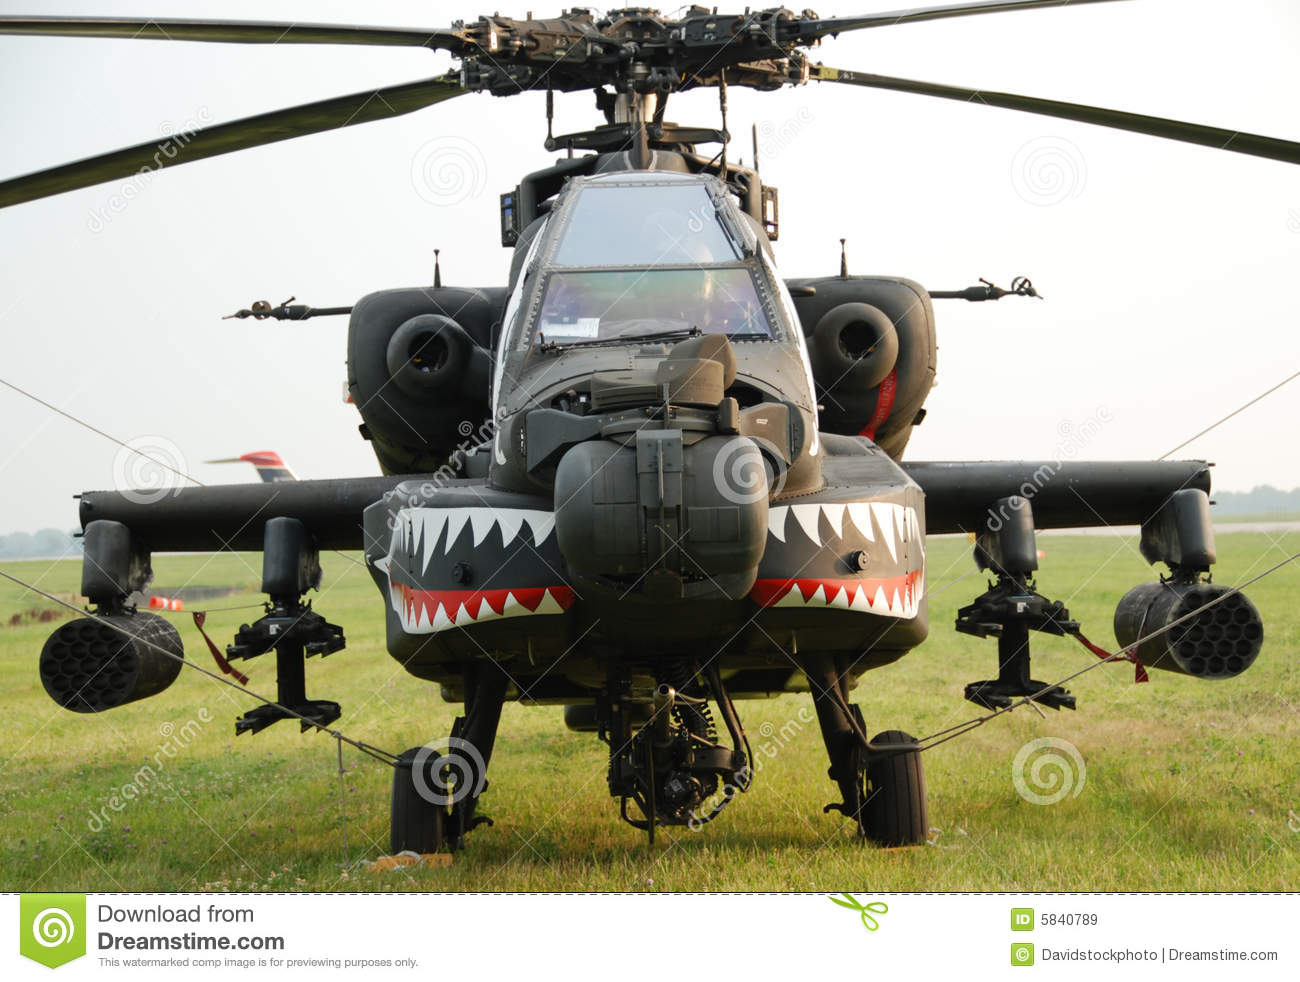 kasatka helicopter with Royalty Free Stock Images Apache Army Helicopter Image5840789 on 162974080243739547 likewise File Ka 60 Helicopter  3 further Royalty Free Stock Images Apache Army Helicopter Image5840789 furthermore Ka 60 add as well 33659.